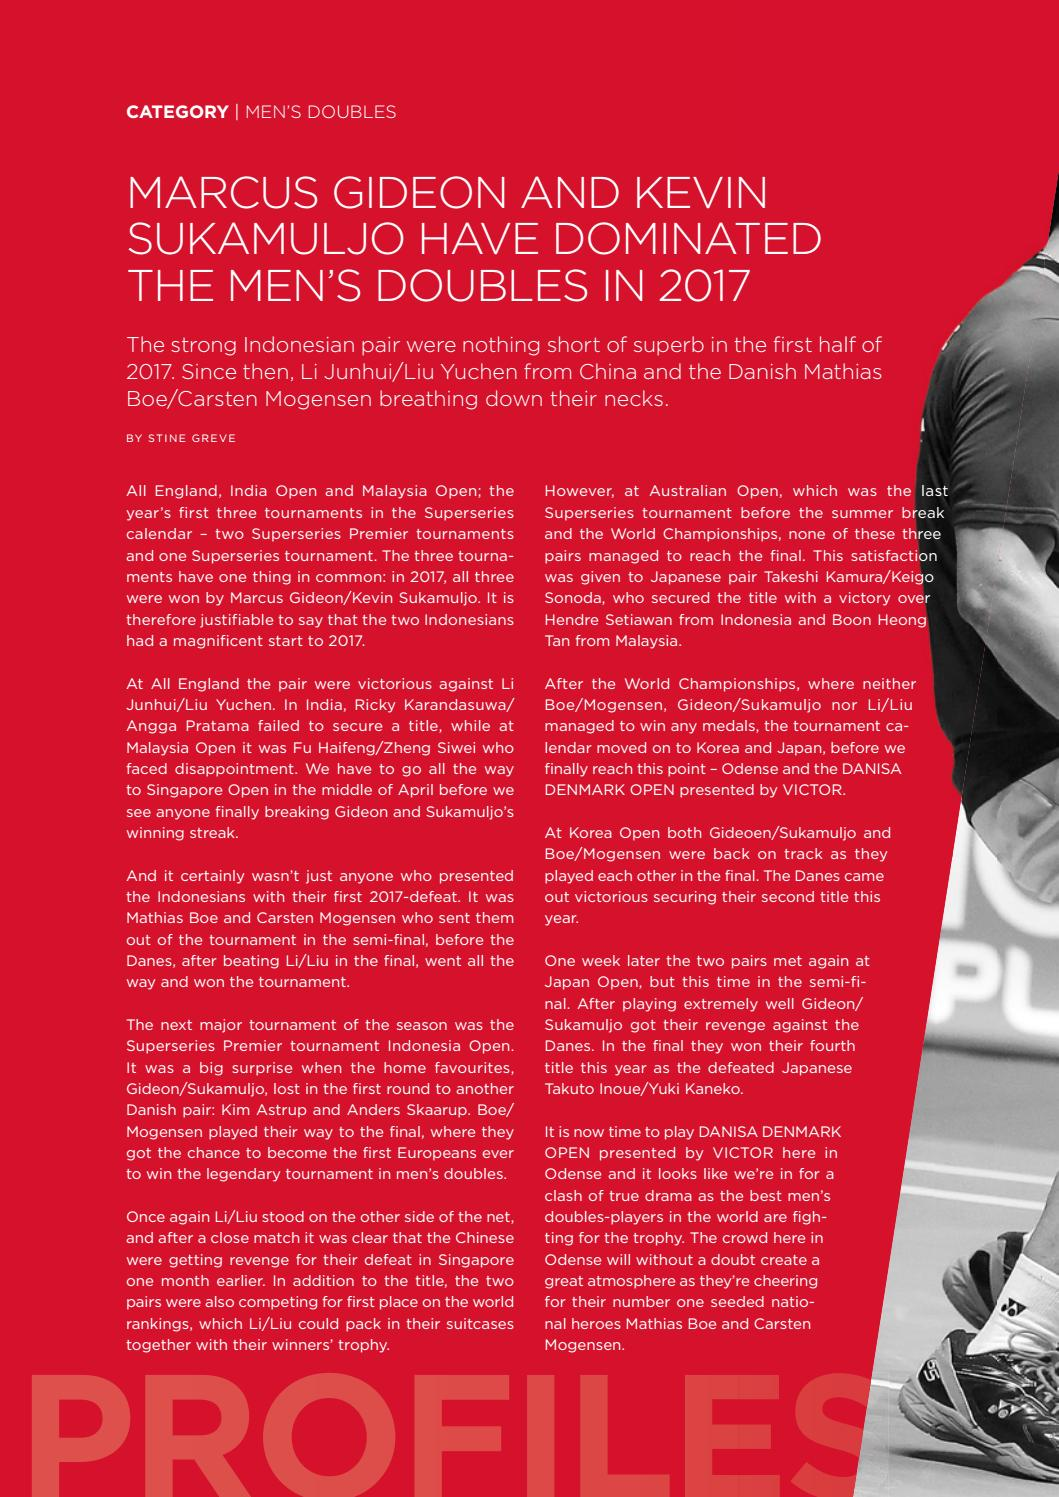 89381c6d18b43 Badminton Magazine - DANISA DENMARK OPEN presented by VICTOR 2017 by ...